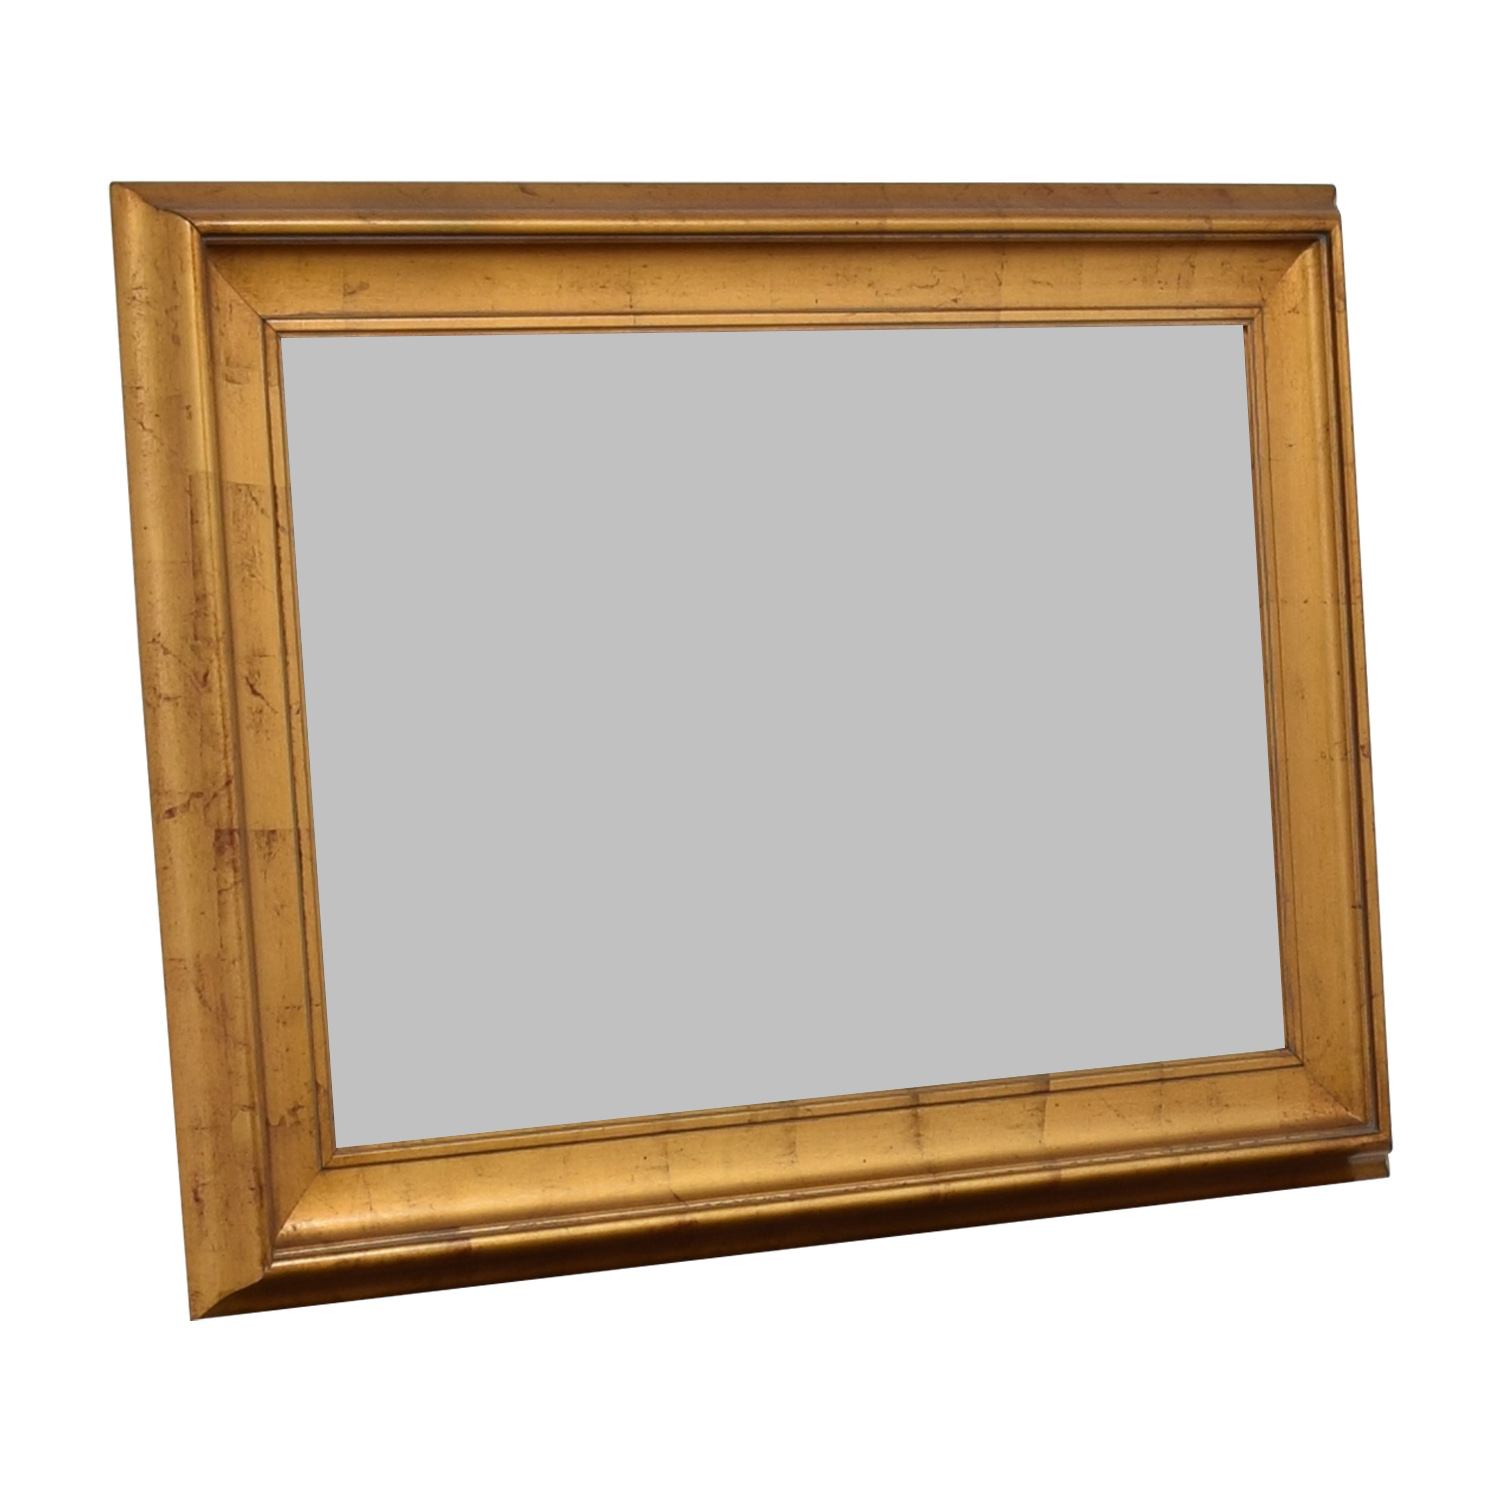 buy Wood Framed Wall Mirror  Decor